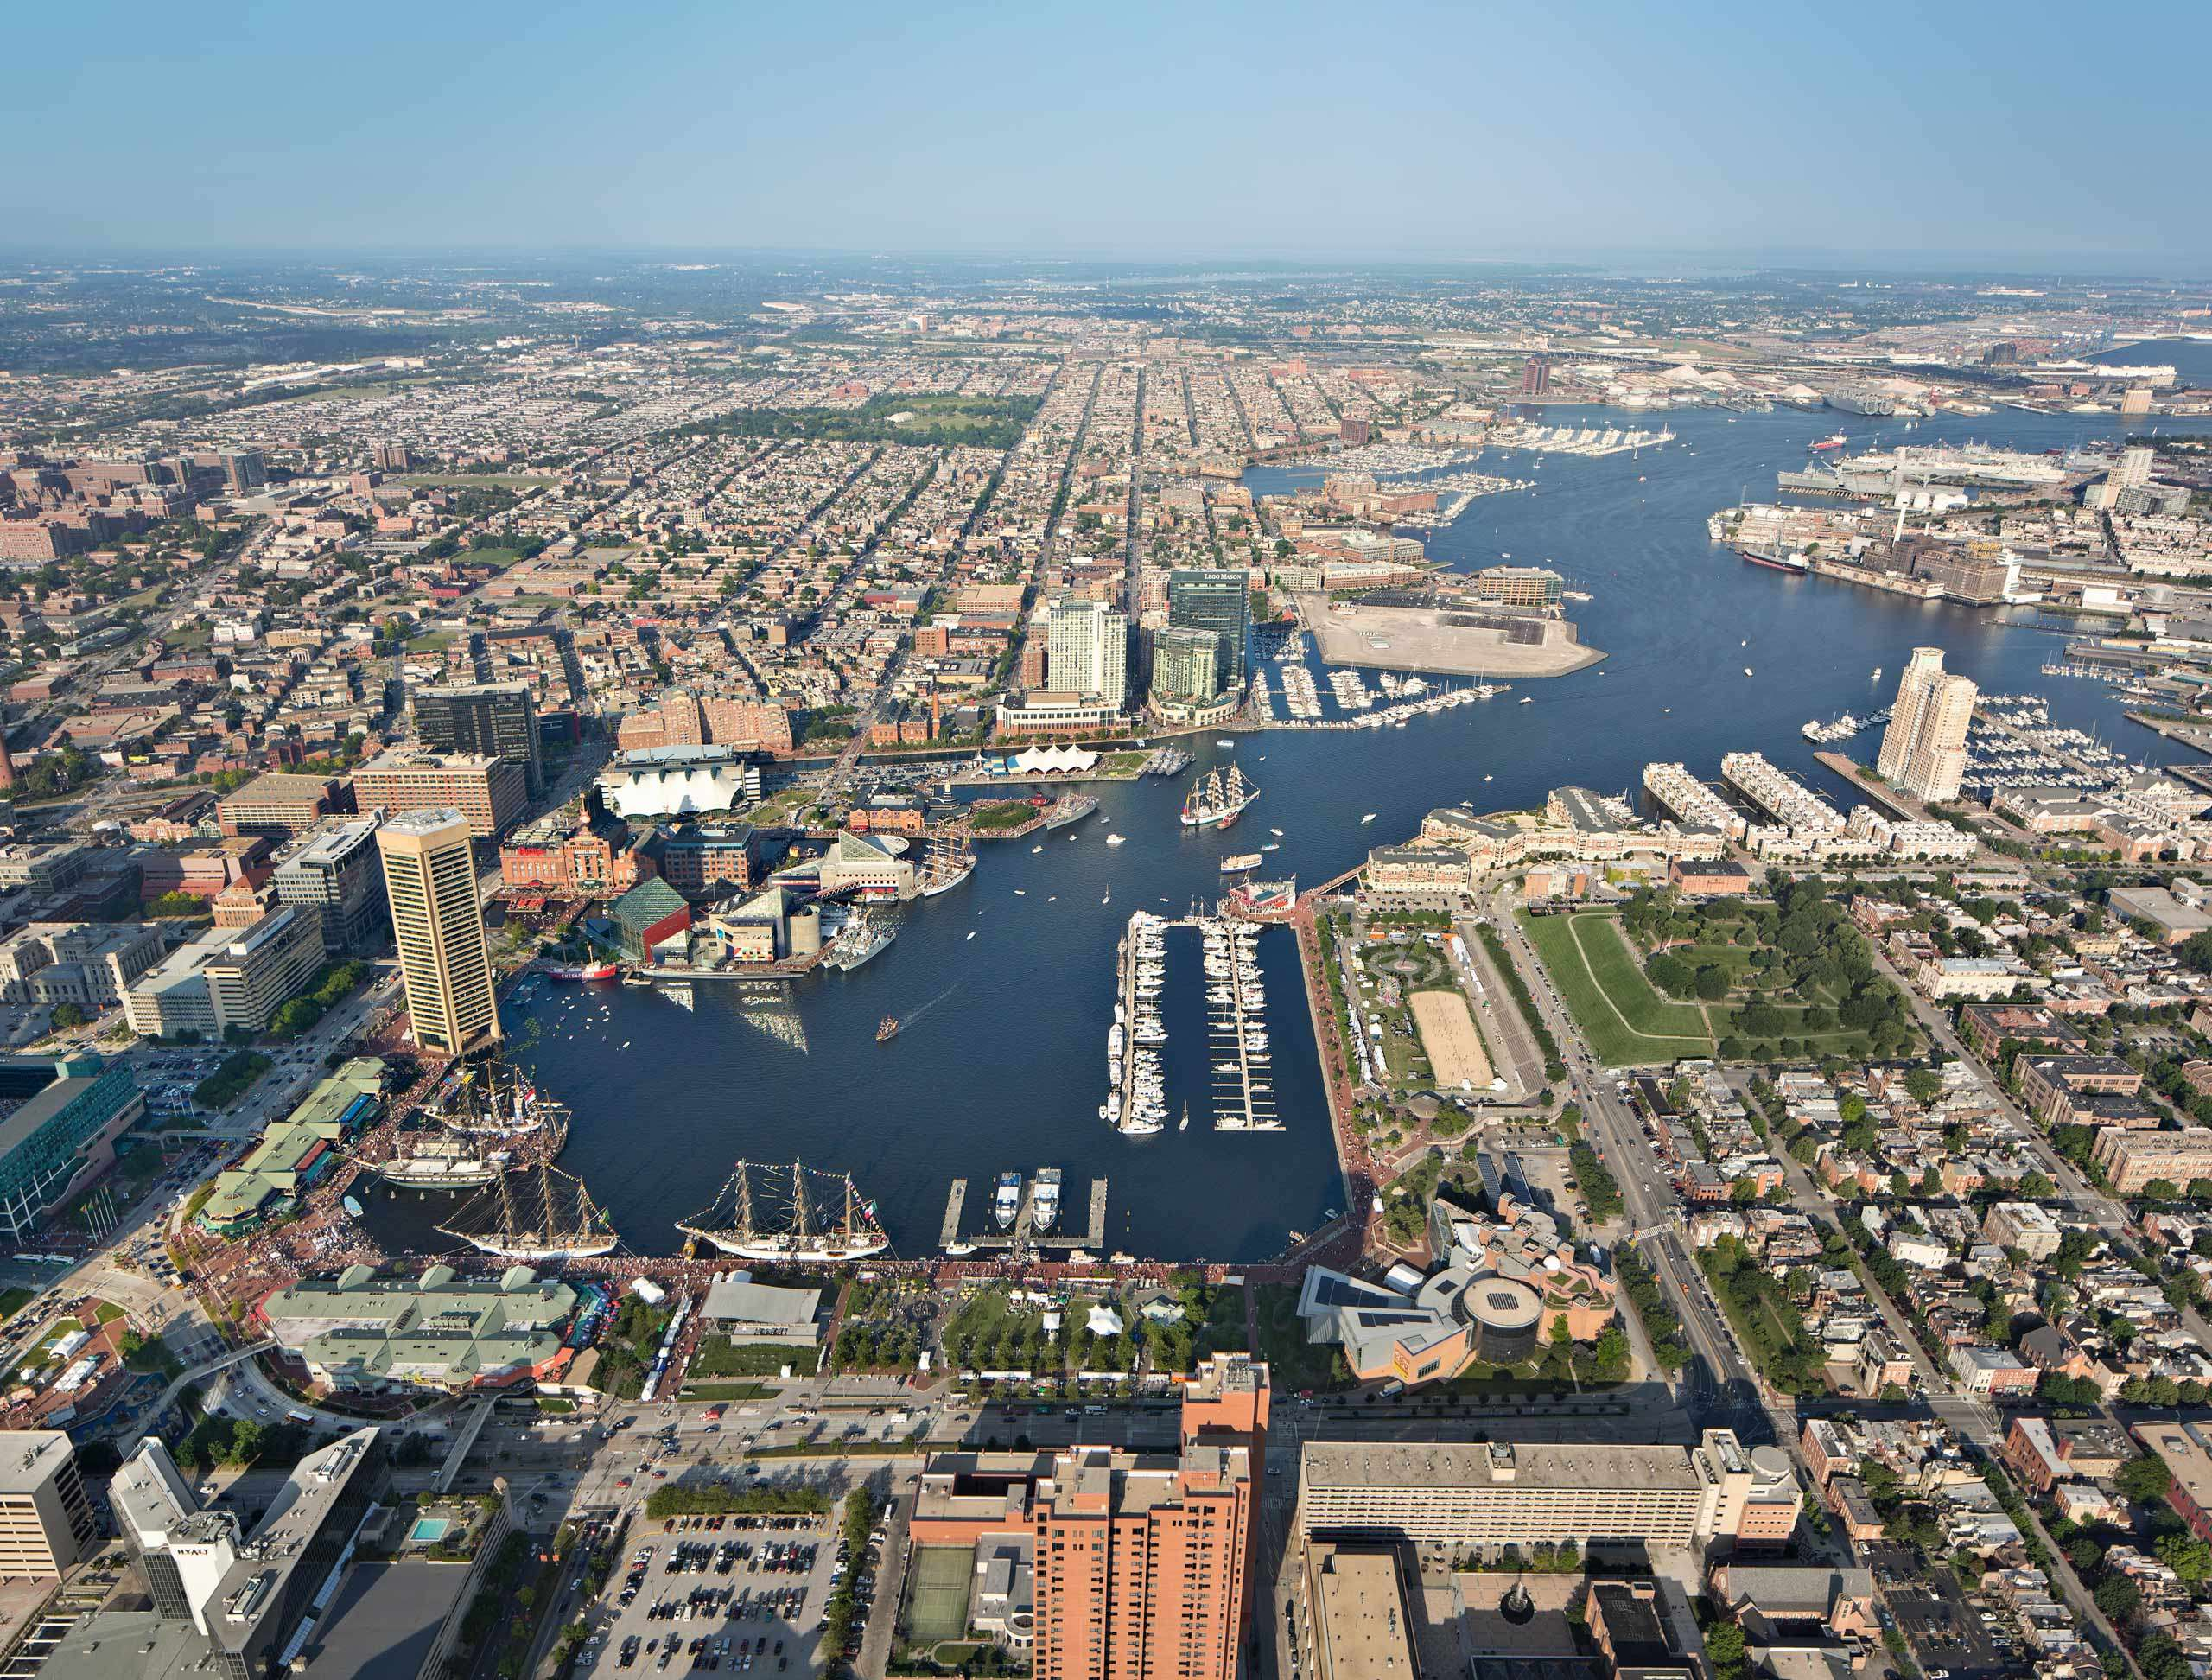 PORTFOLIO - Baltimore Skylines #7 and Baltimore - Attractions #23  Aerial View of Baltimore's Inner Harbor PCG695